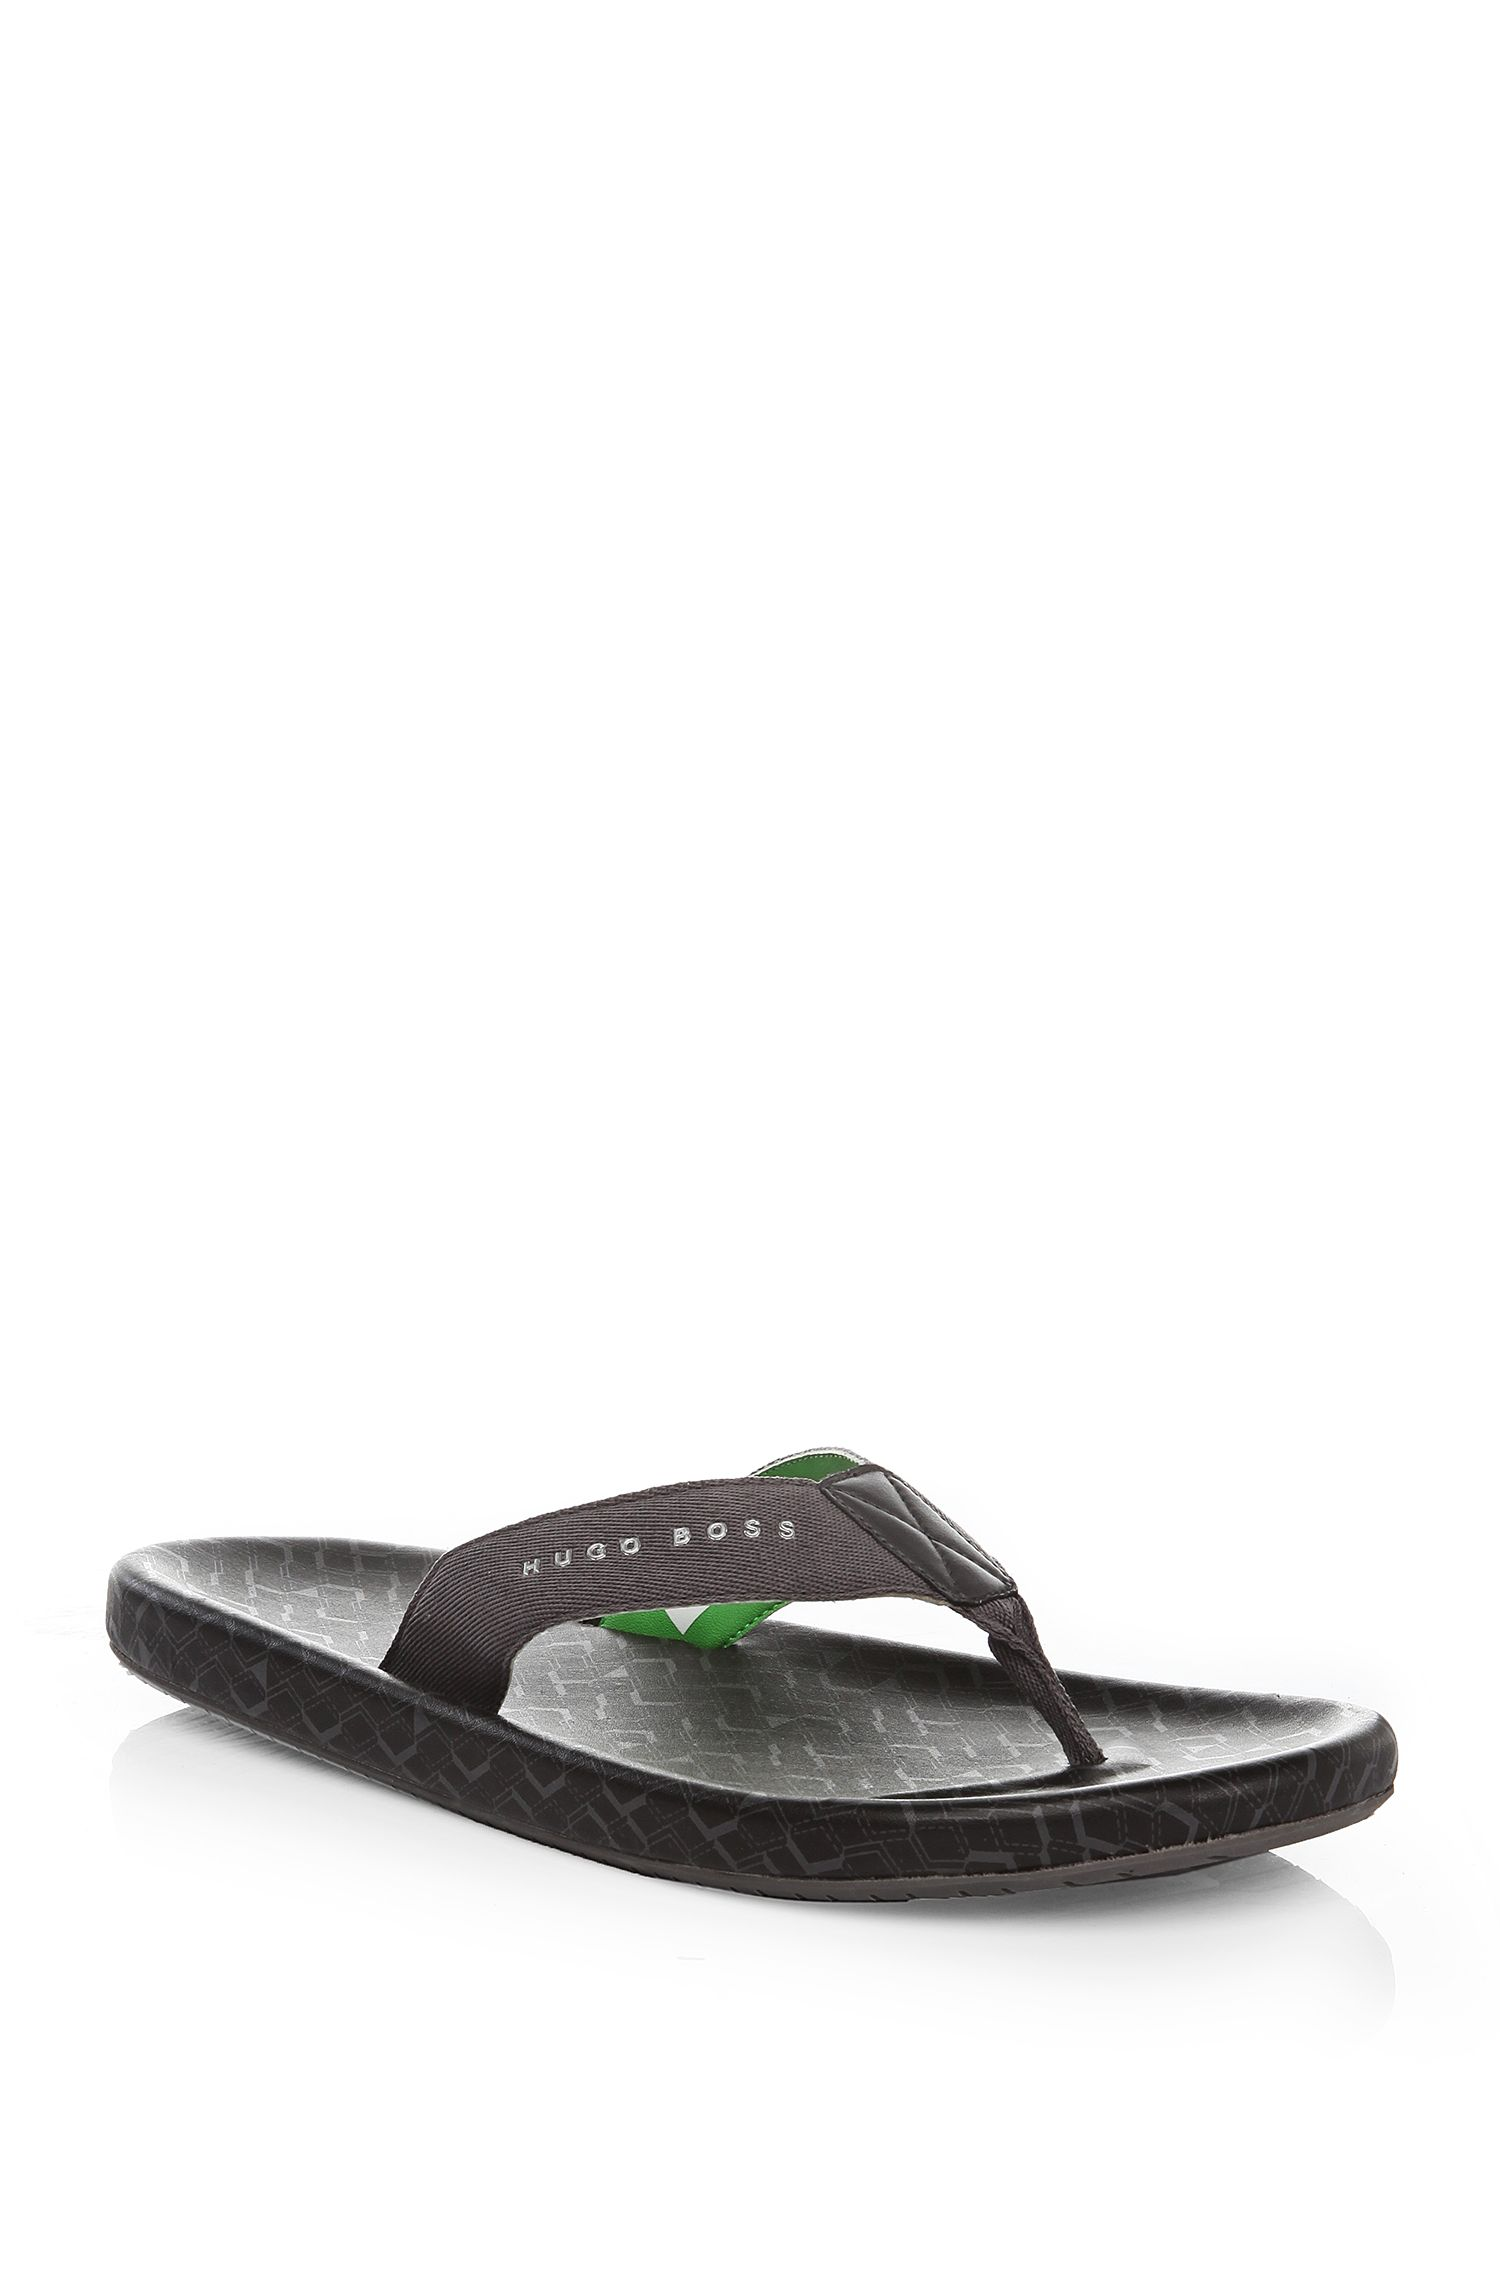 'Shoreline Sunshine' | Cotton, Rubber Flip Flops